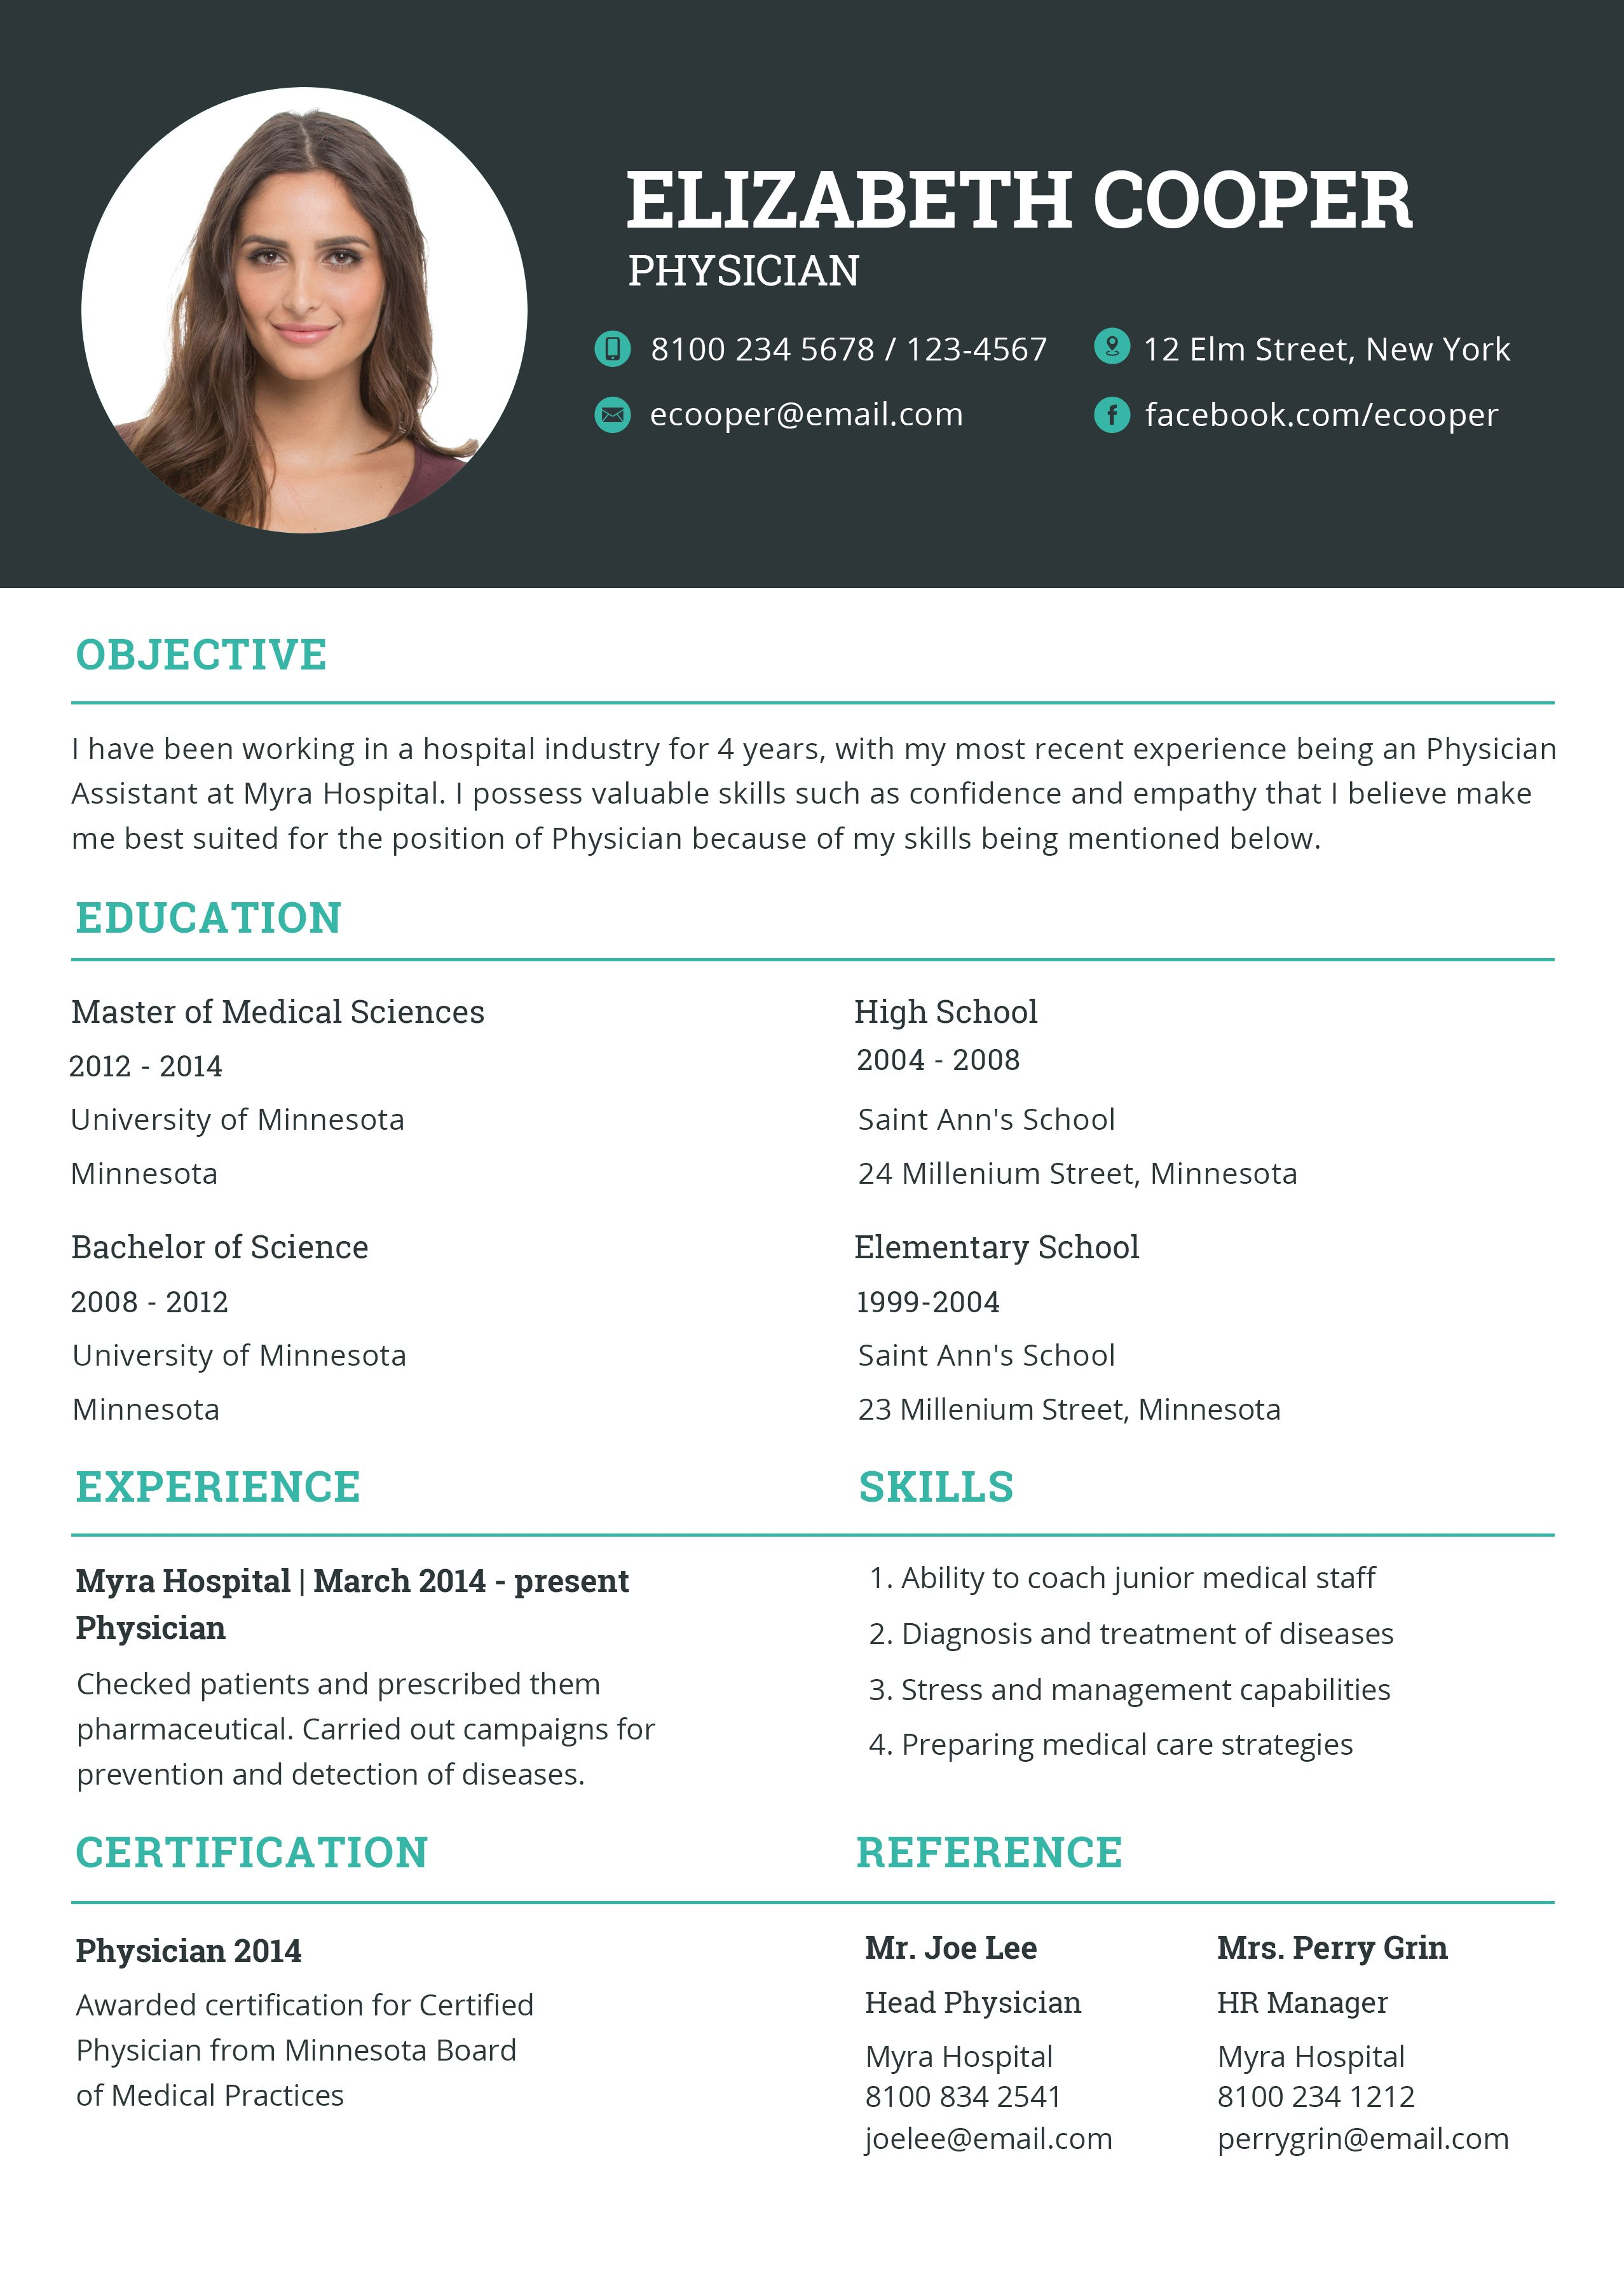 Physician Resume Cv Template Word Psd Indesign Apple Pages Illustrator Publisher Indesign Resume Template Resume Template Cv Template